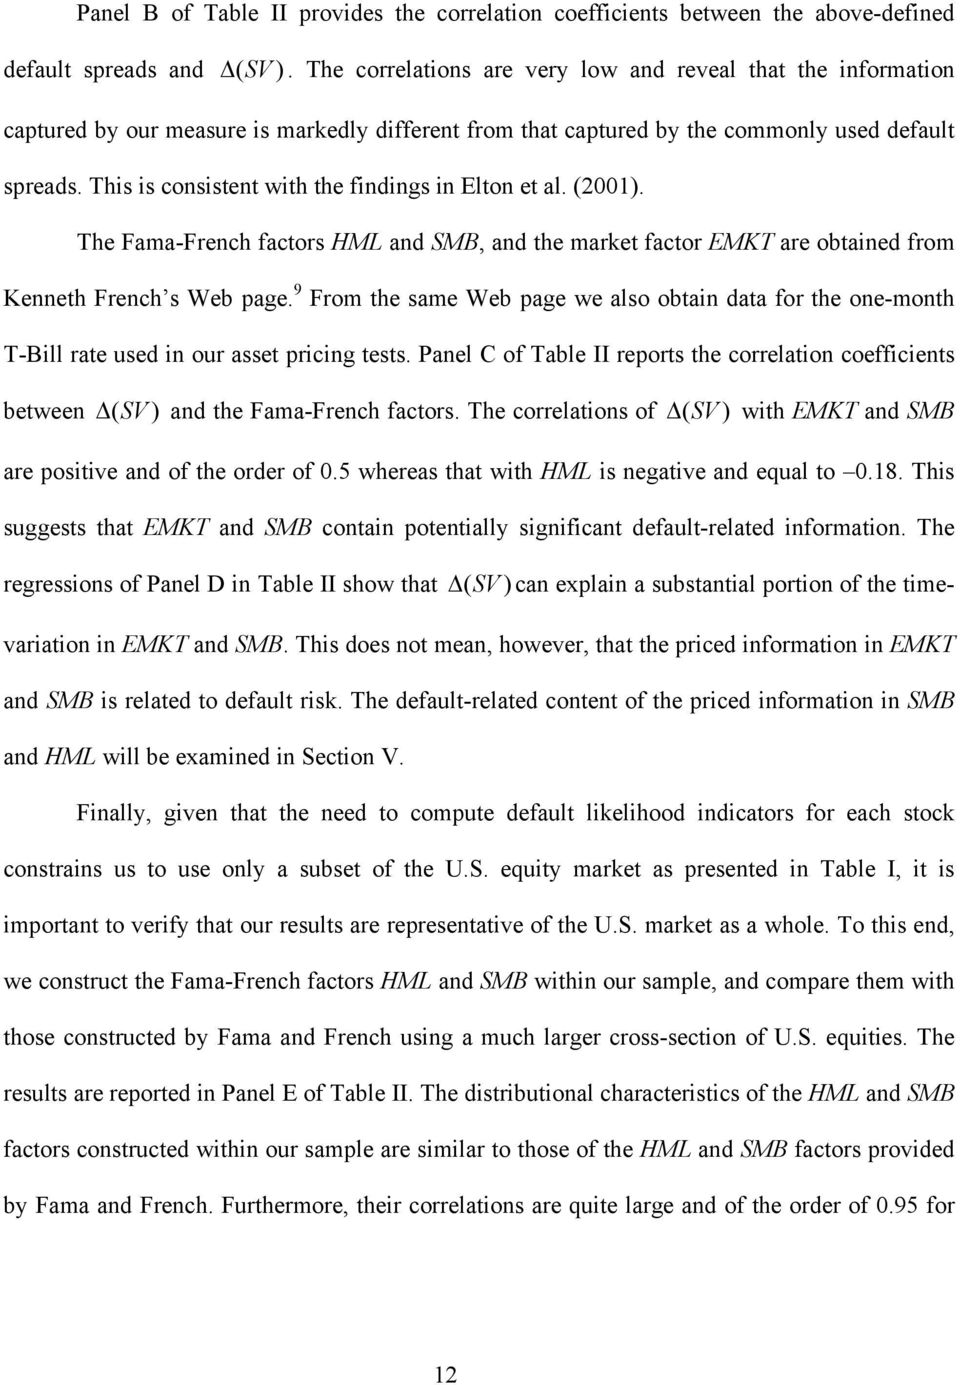 (2001). The Fama-French facors HML and SMB, and he marke facor EMKT are obained from Kenneh French s Web page.